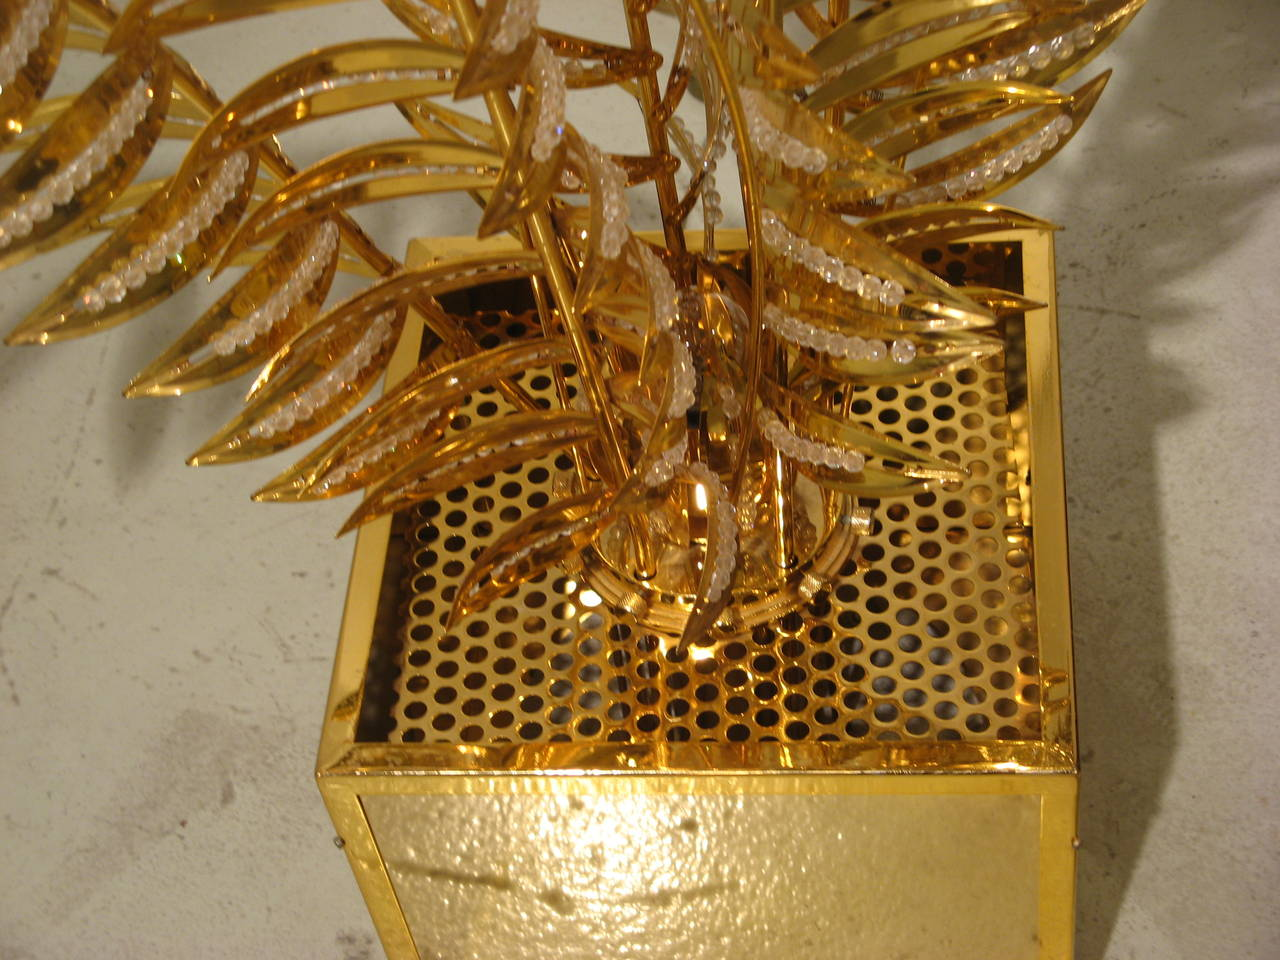 Brass Floor Lamp with Stylized Palm Tree Branches Embellished with Crystals 6